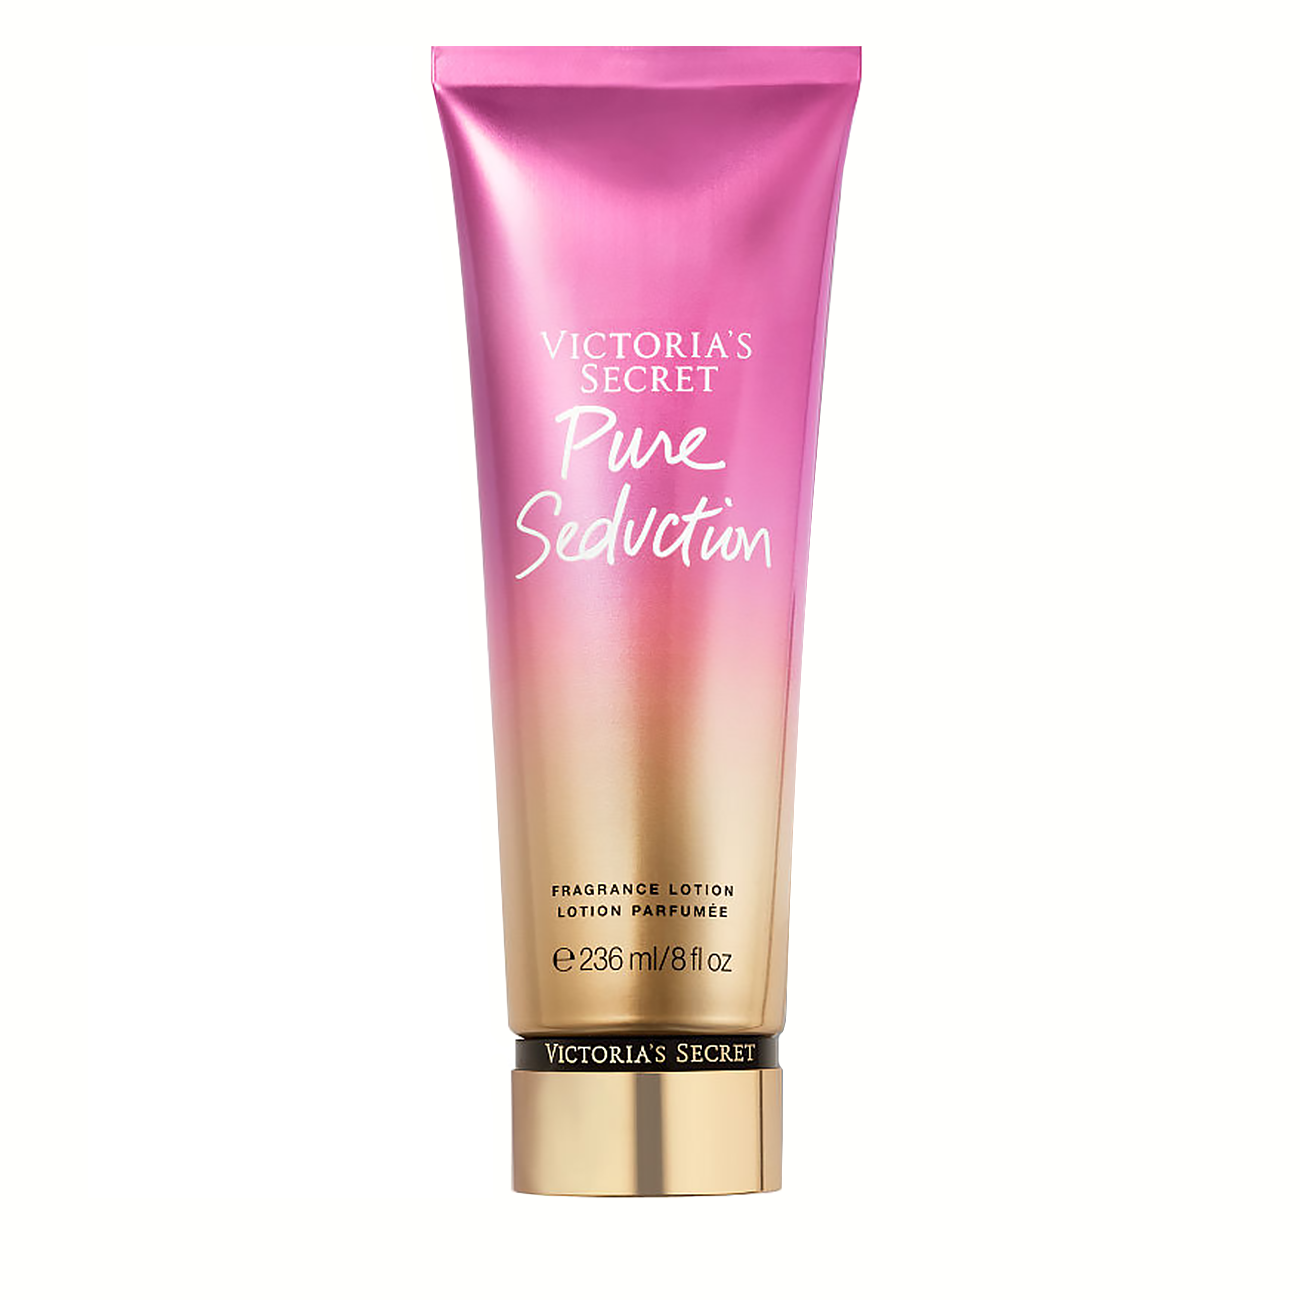 PURE SEDUCTION LOTION 236ml poza